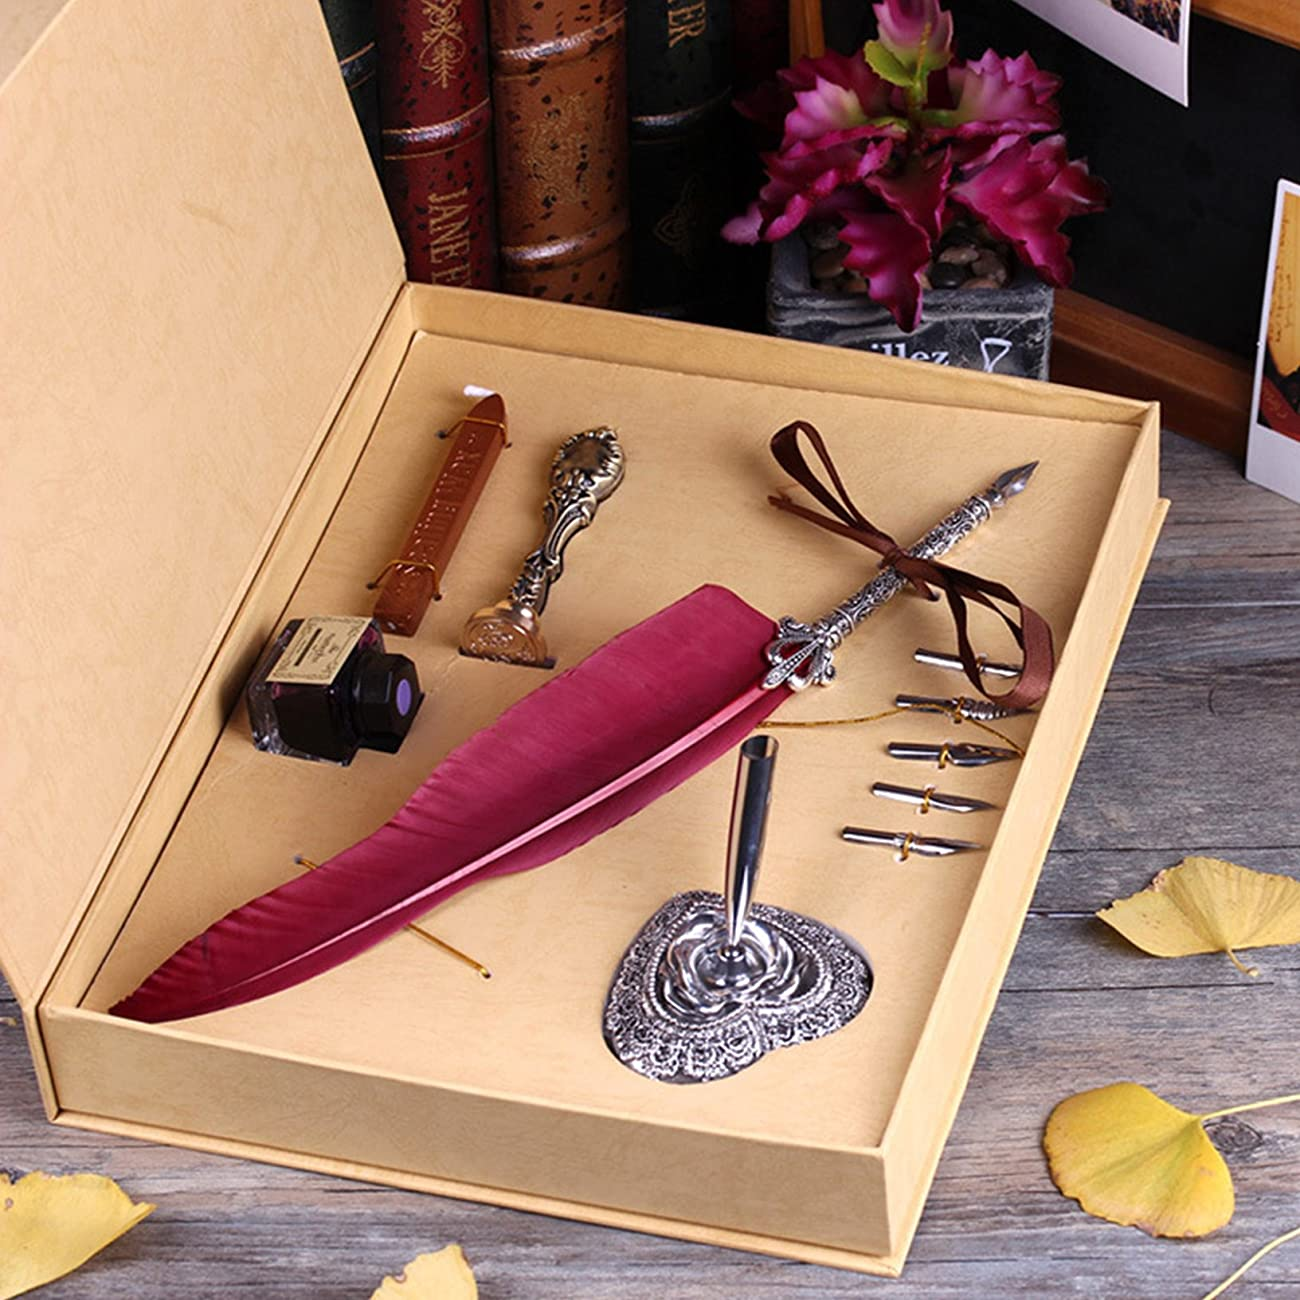 Toyofmine Antique Feather Pen Set (5 Extra Calligraphy Nibs,1 Feather Pen,1 Seal Wax Stick and Stamp with 1 Ink Pot , 1 Pen Holder and 1 Box) 1